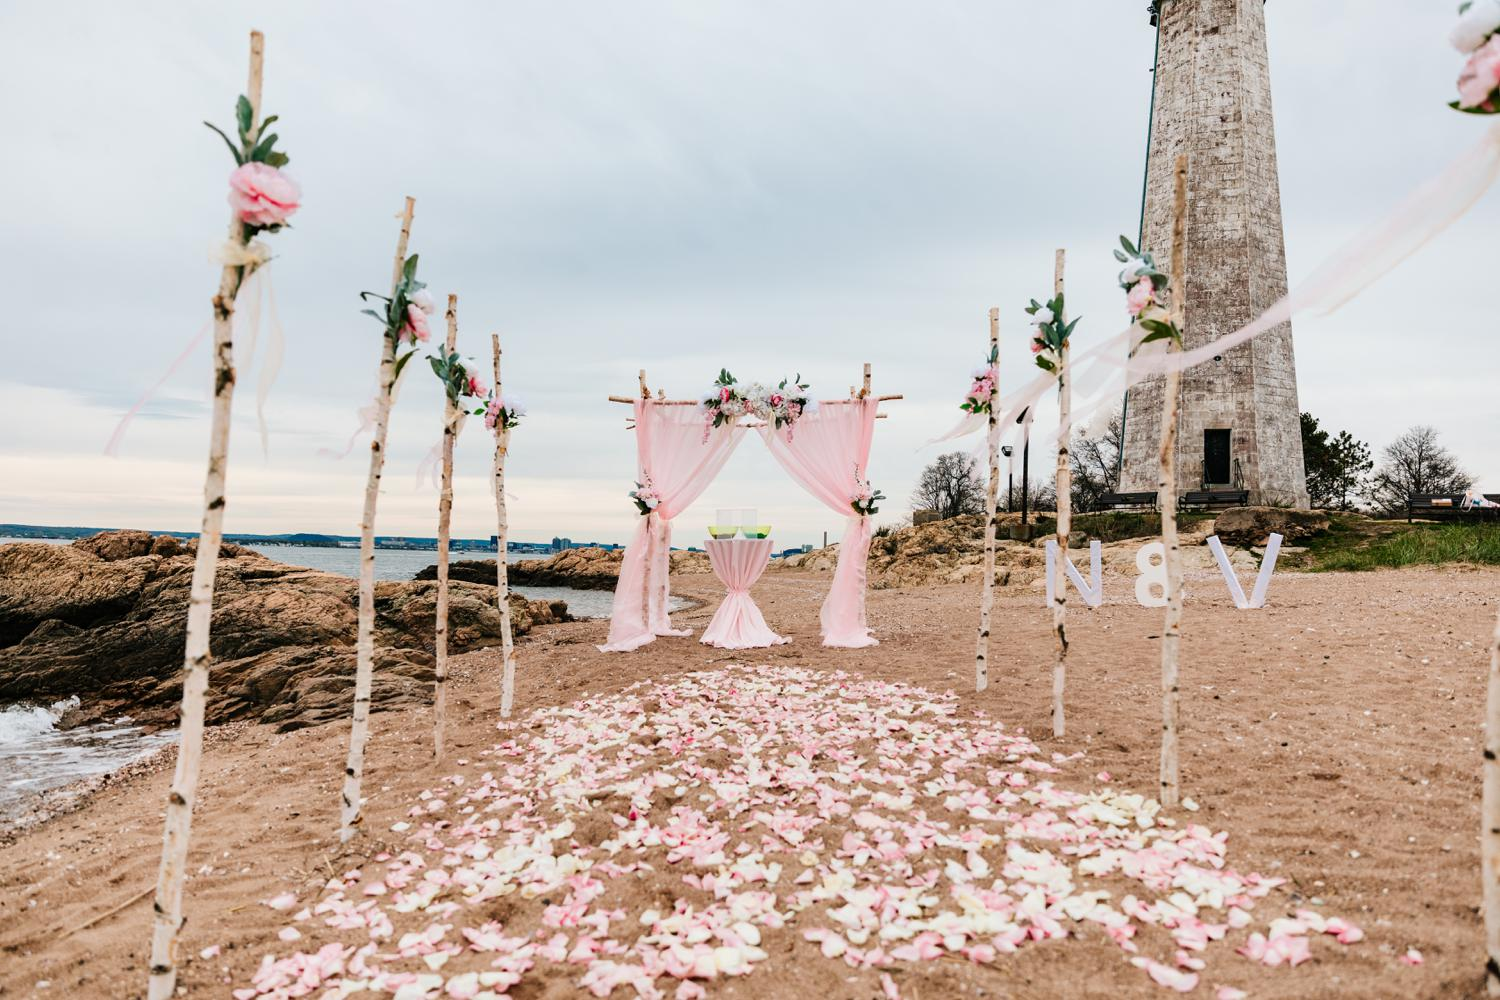 Beachy ceremony area for pink ocean wedding day